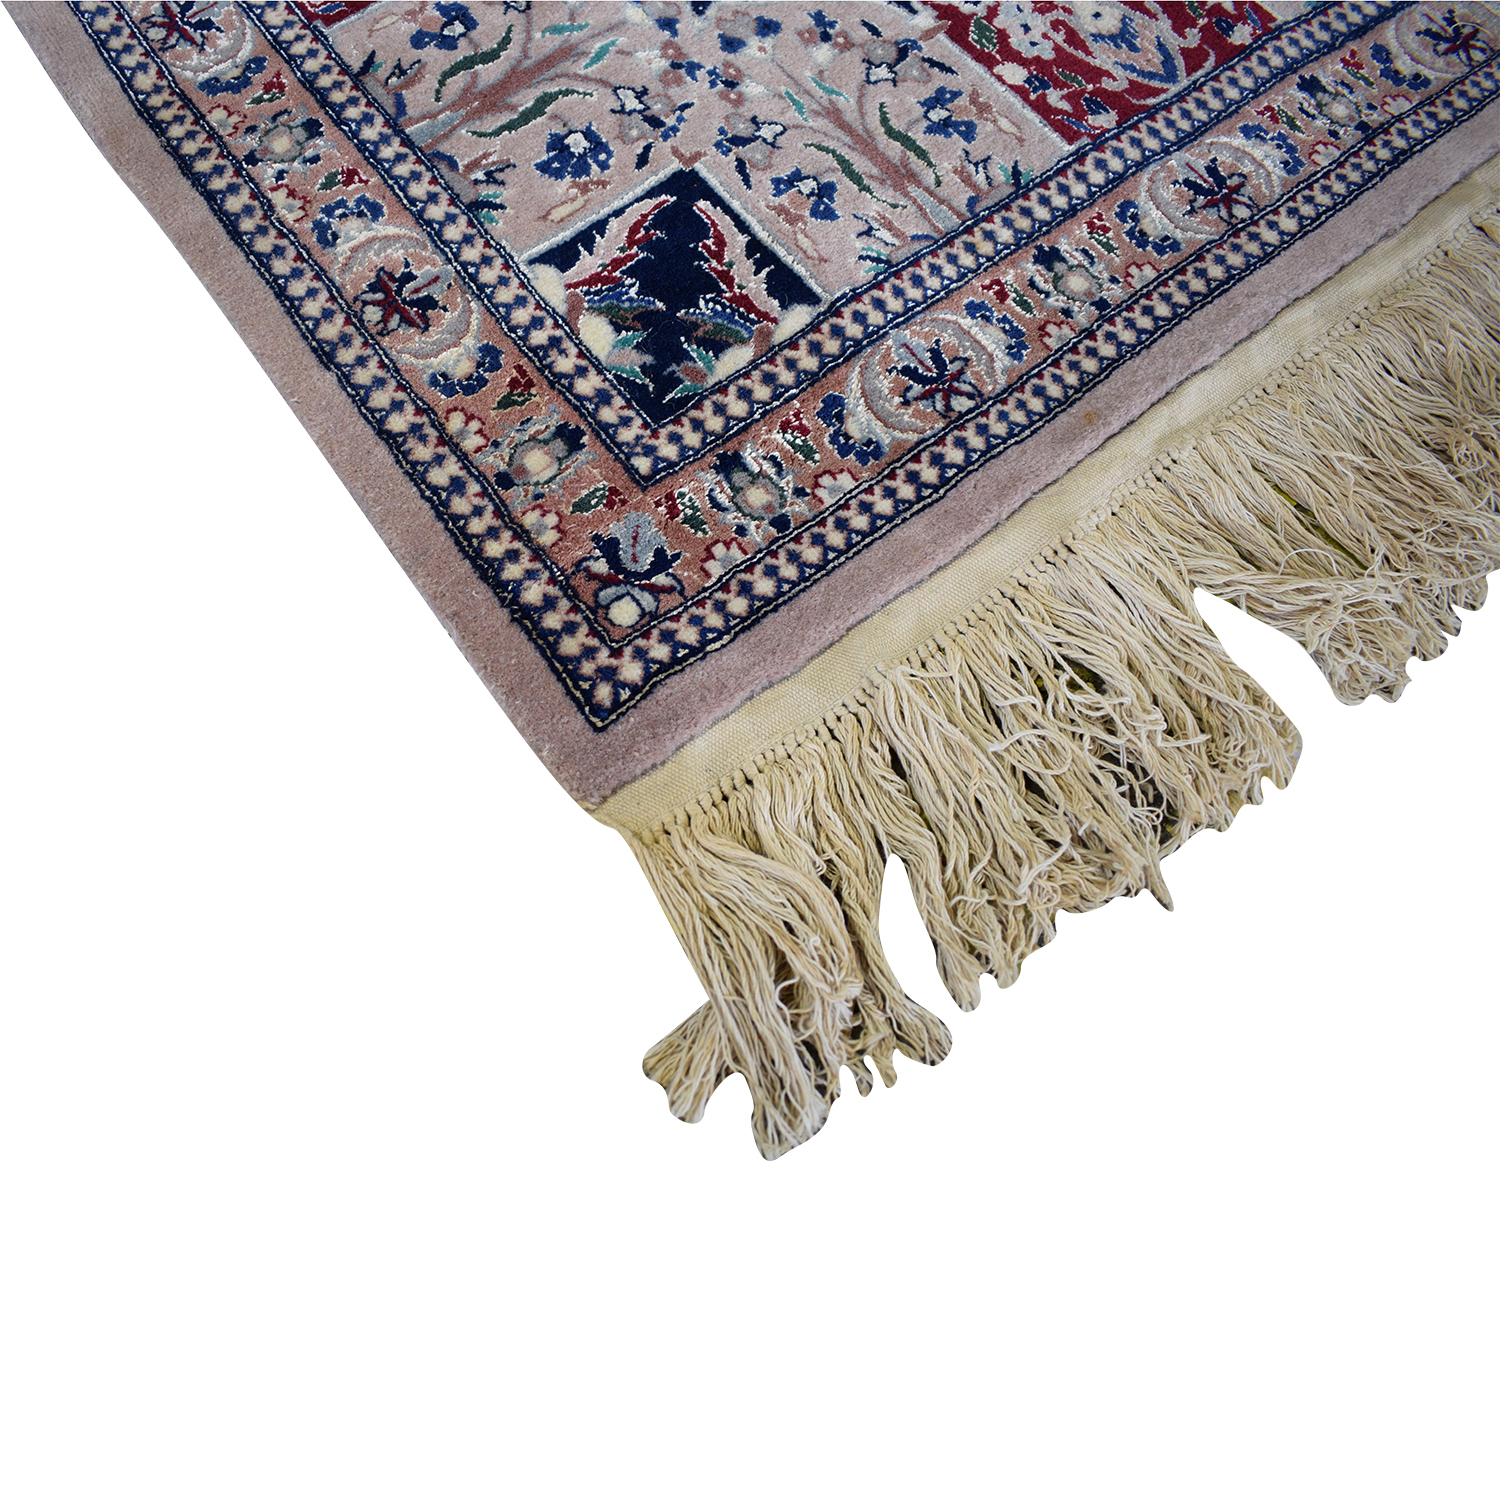 Multi-Colored Pakistani Rug with Fringe used